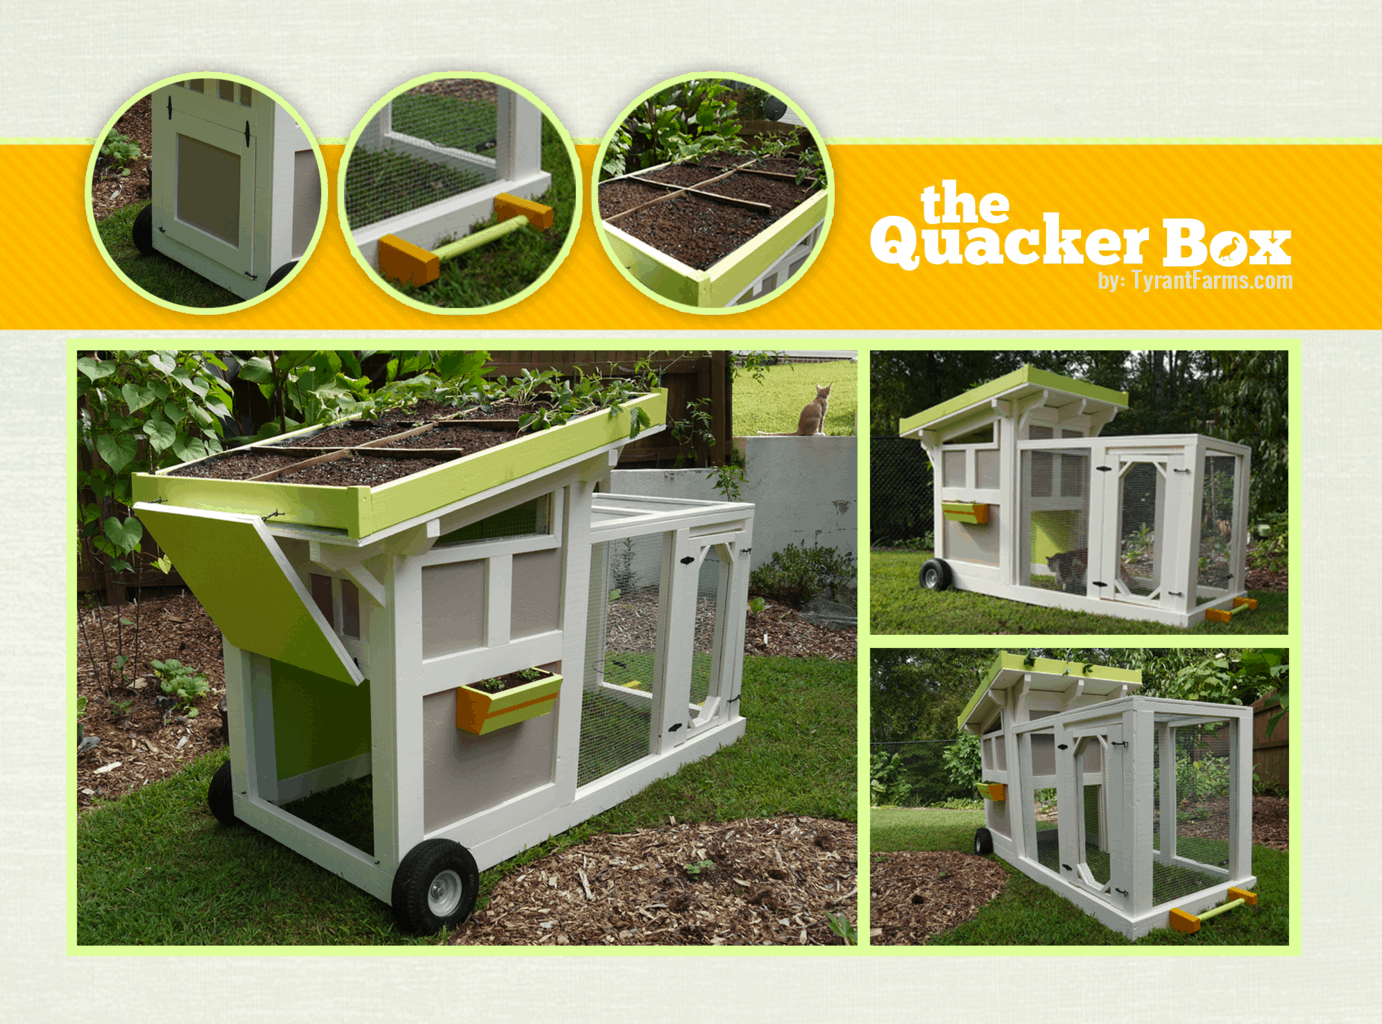 This is the Quacker Box we made for our ducks. If you want to make your own mobile duckmobile, click here to learn how. If you want to buy a duck or chicken coop that takes less carpentry skills, see the links below.